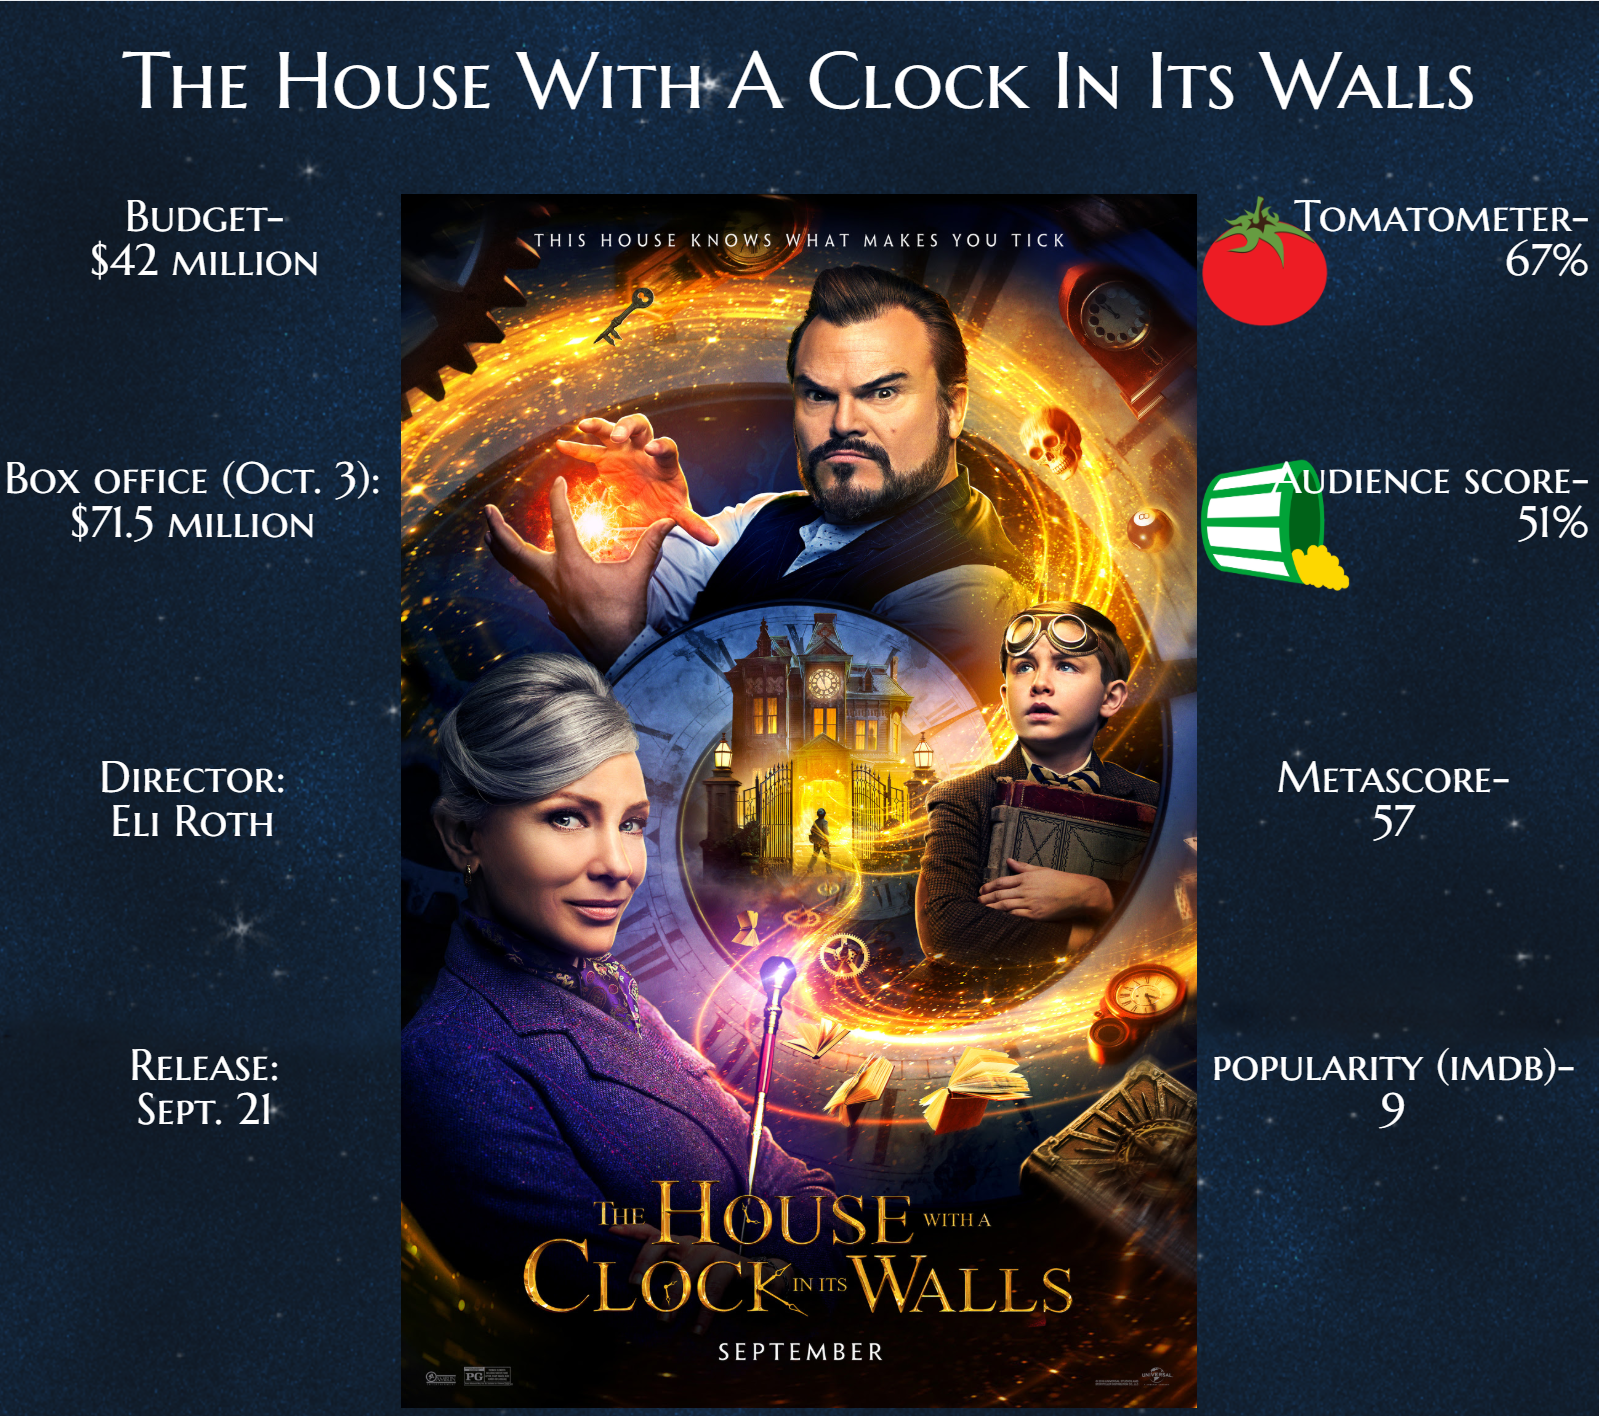 House with clock in its walls infographic